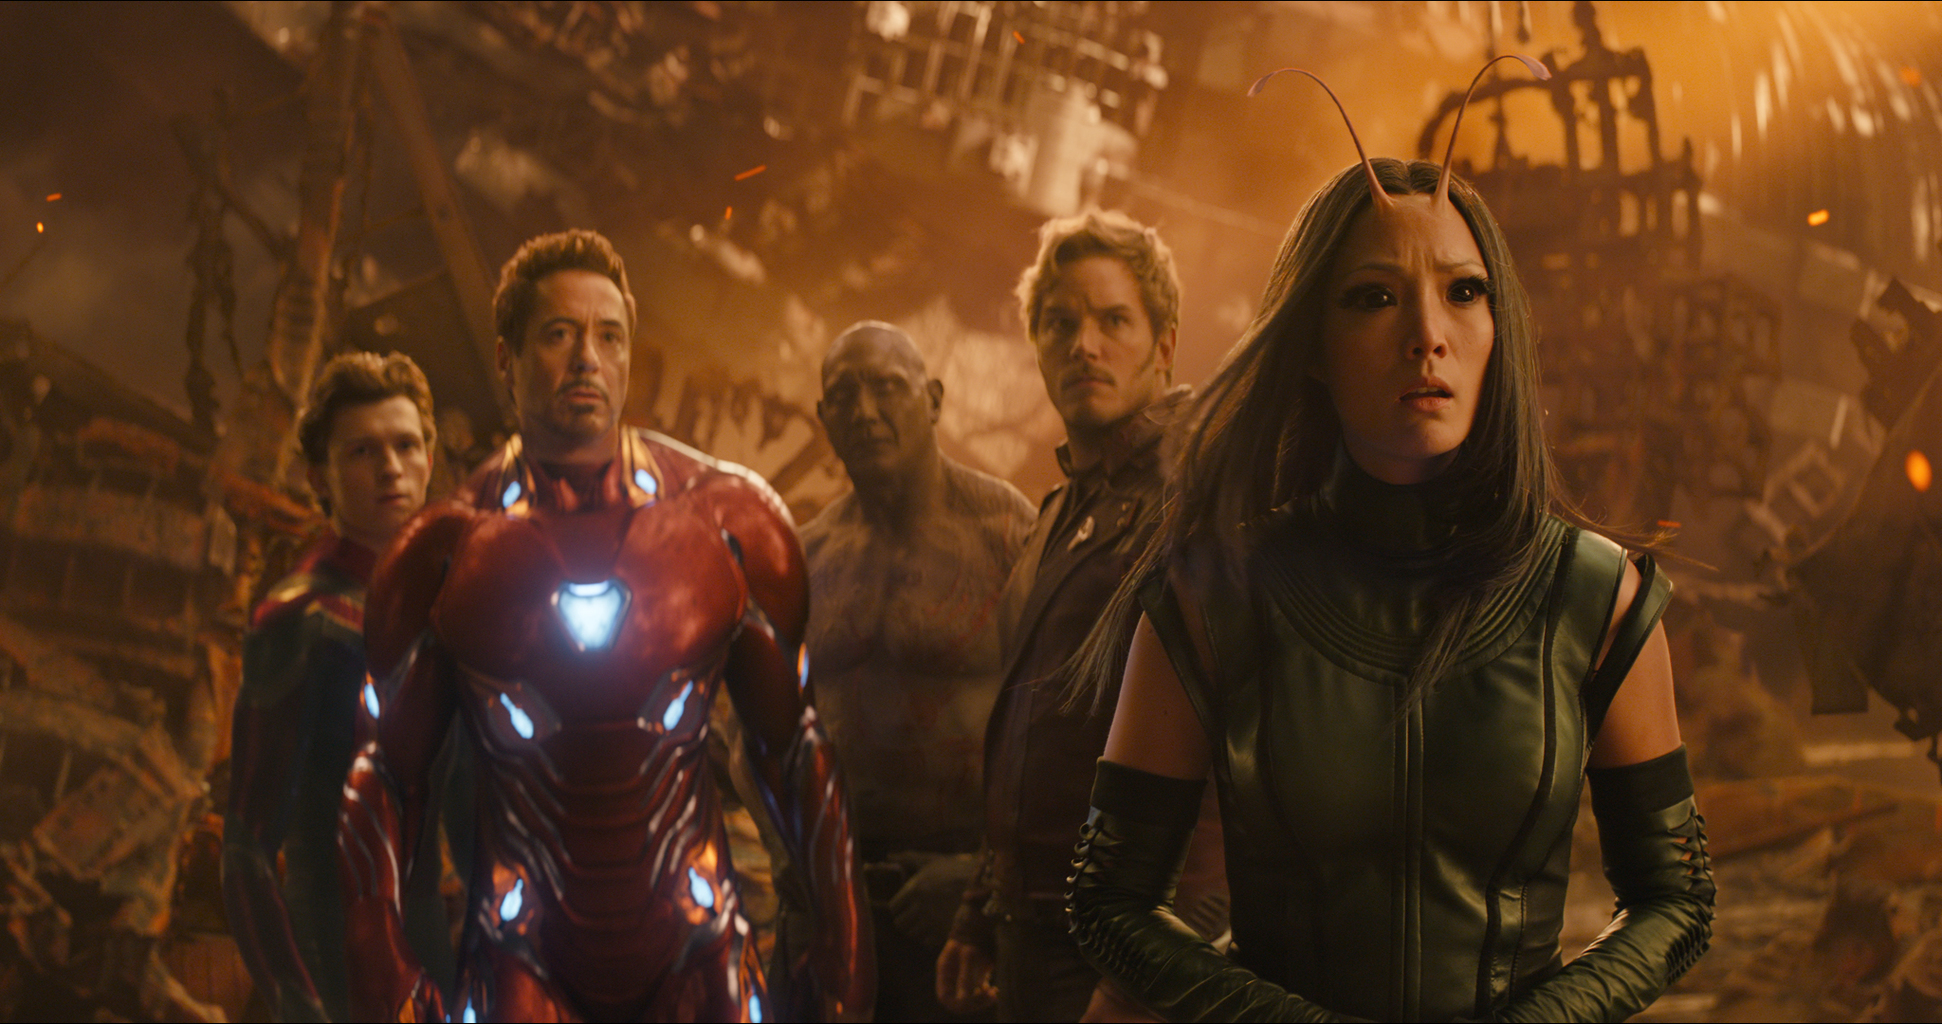 infinity war quotes from marvel's avengers infinity war - this